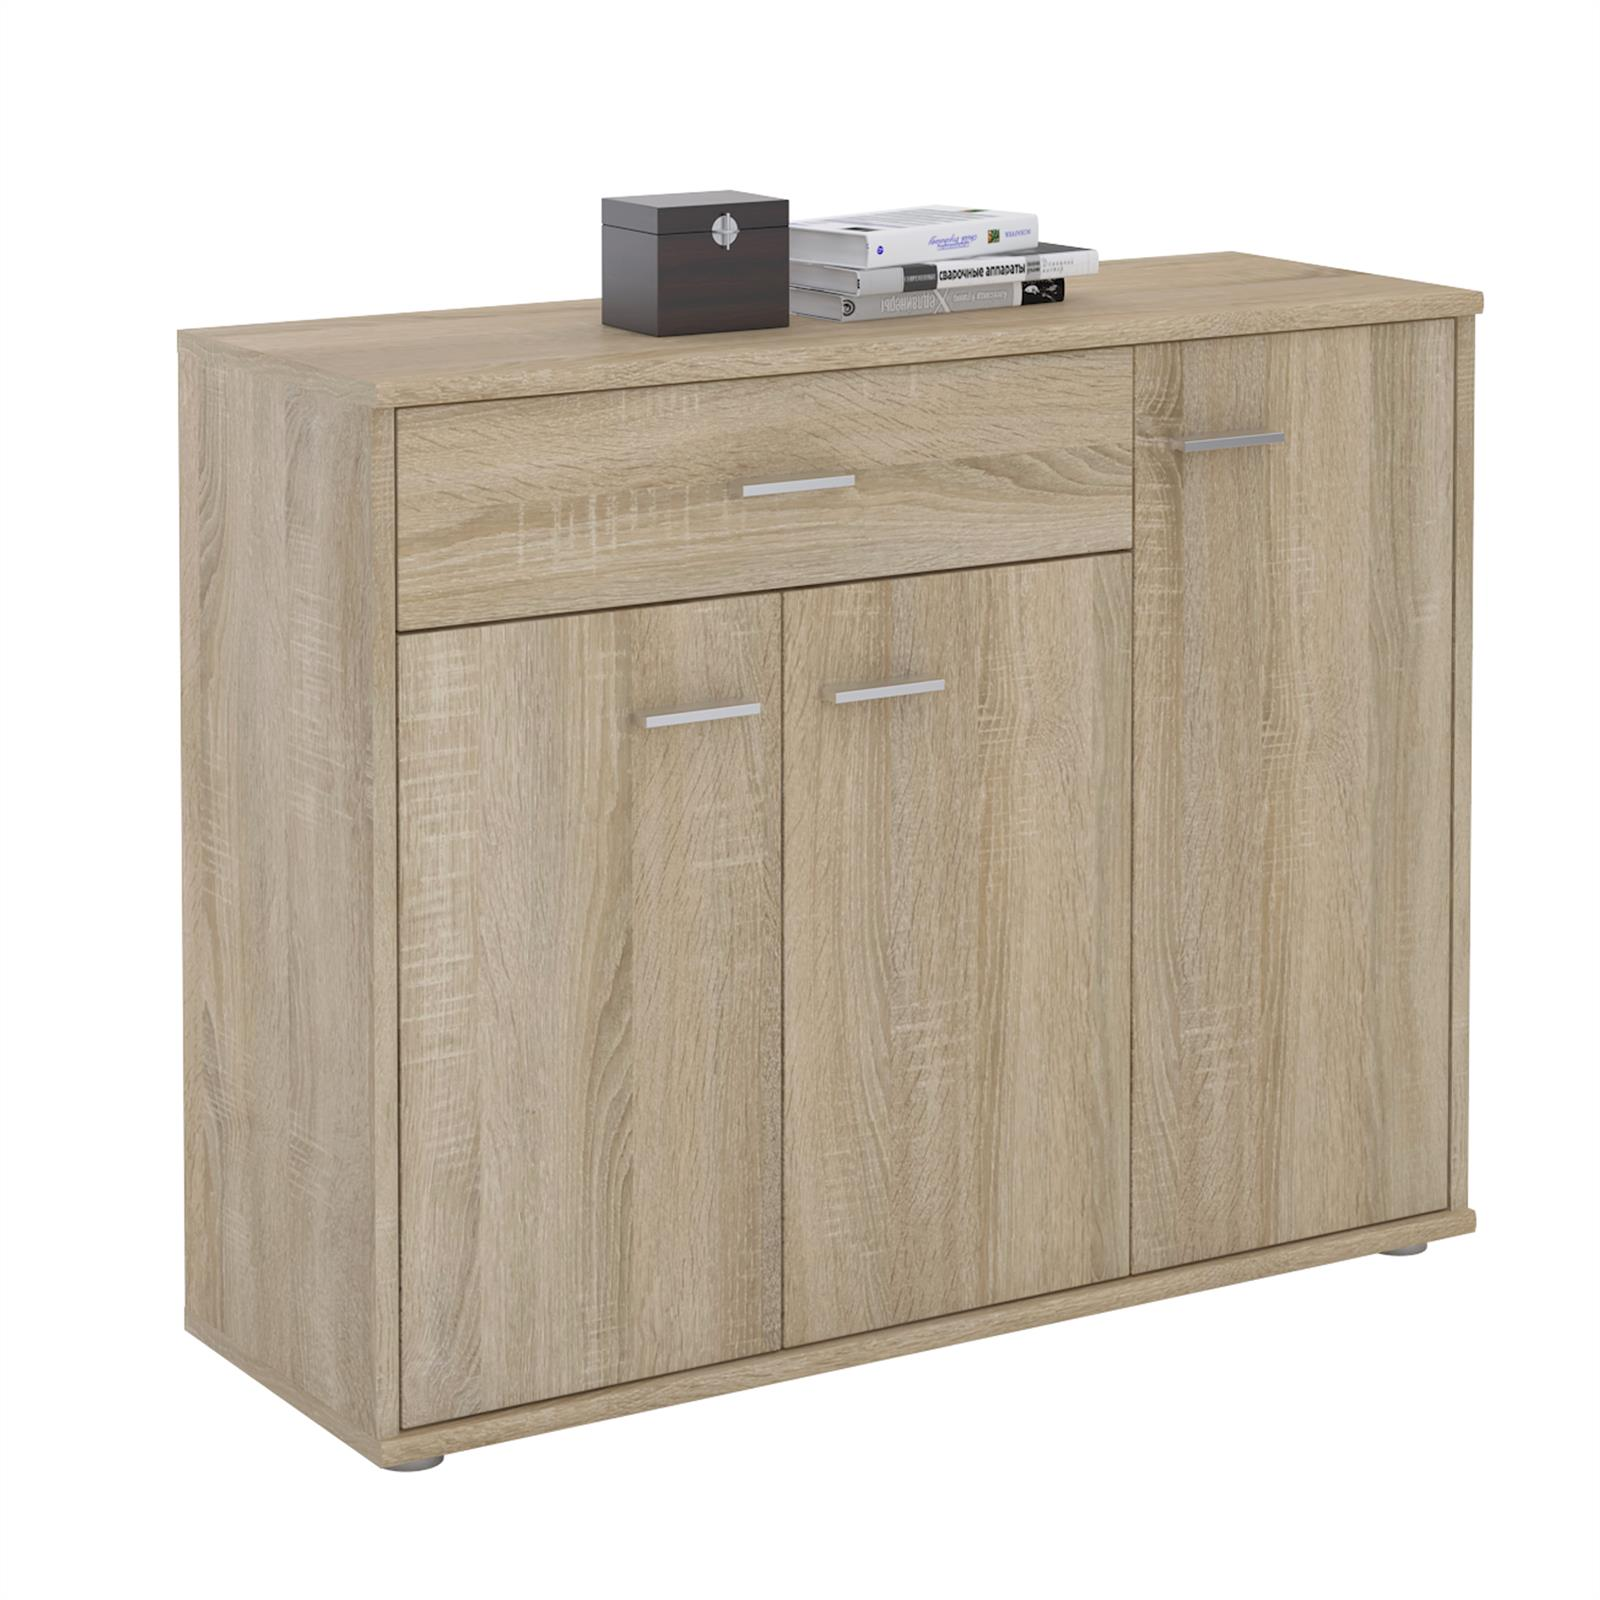 kommode sideboard mehrzweckschrank 3 t ren und 1 schublade 88 cm breit ebay. Black Bedroom Furniture Sets. Home Design Ideas